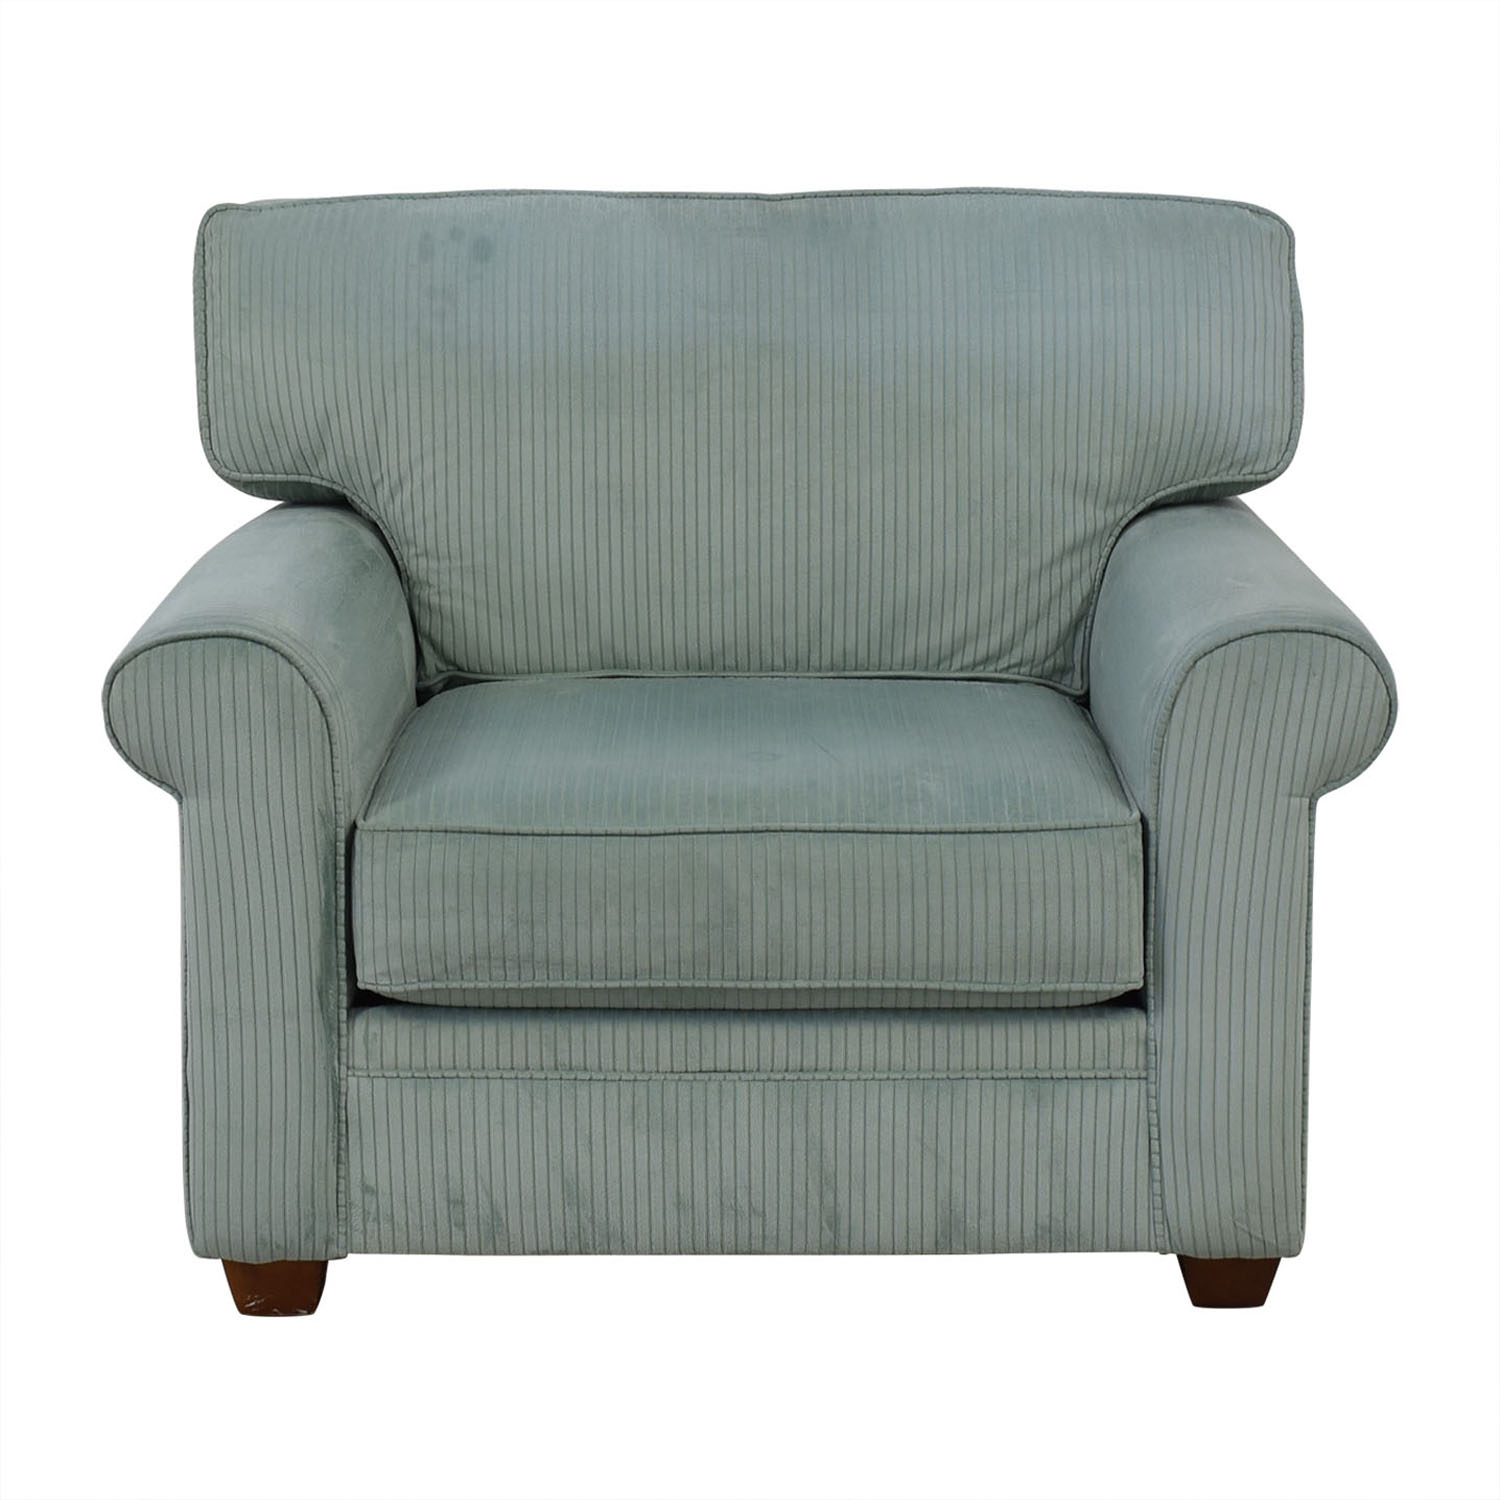 Havertys Havertys Grey Lux Armchair gray